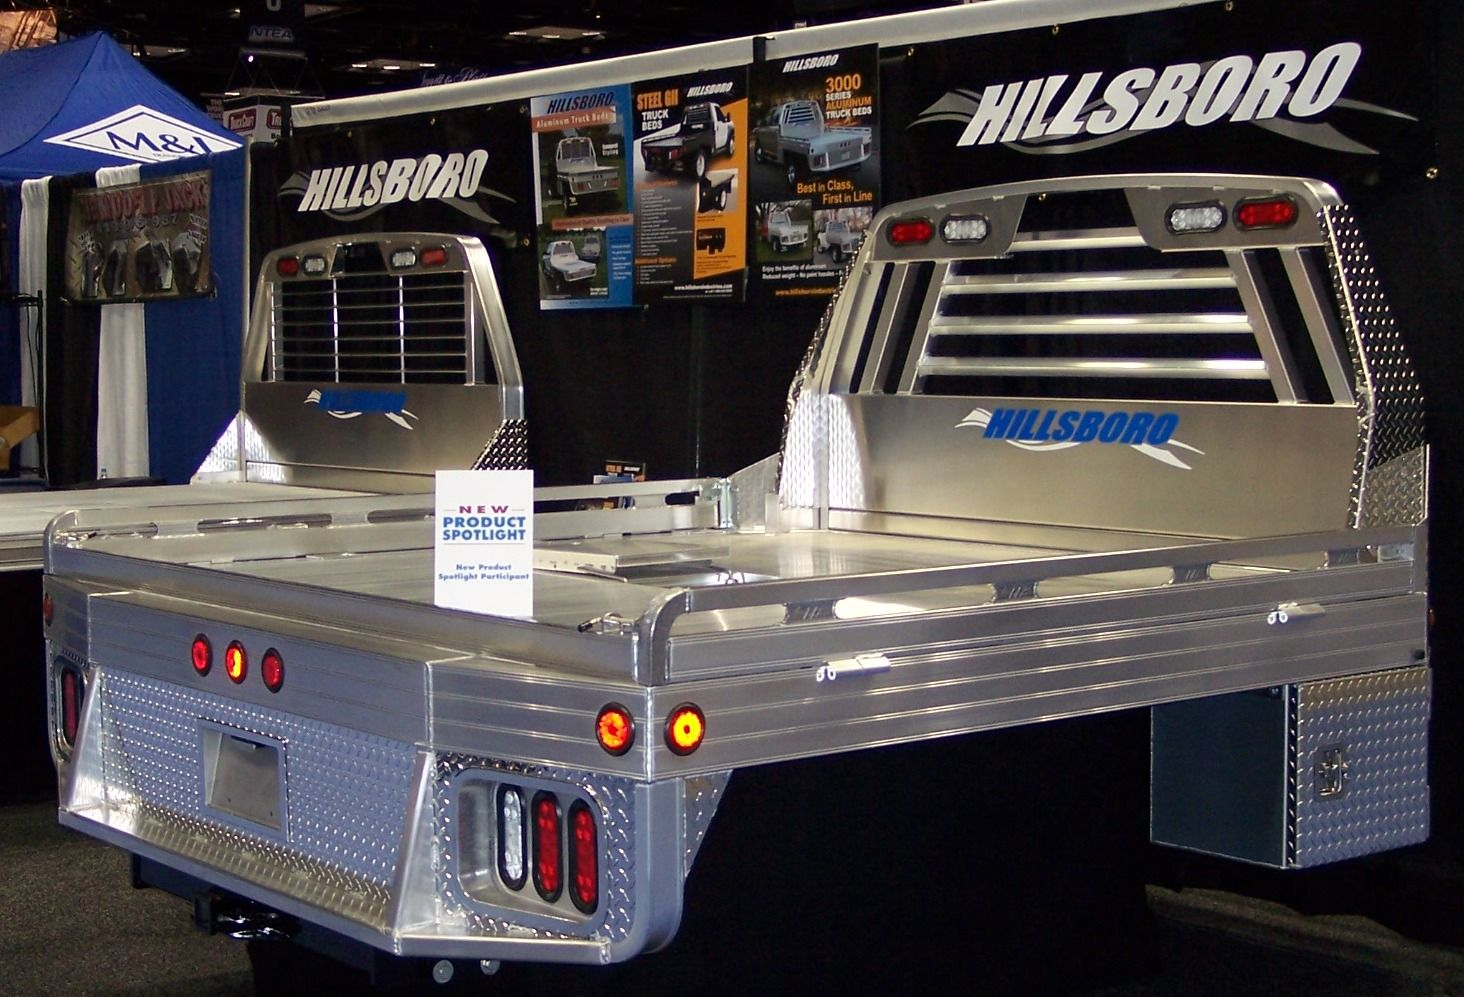 Shown with Optional Tailboard Aluminum truck beds, Truck